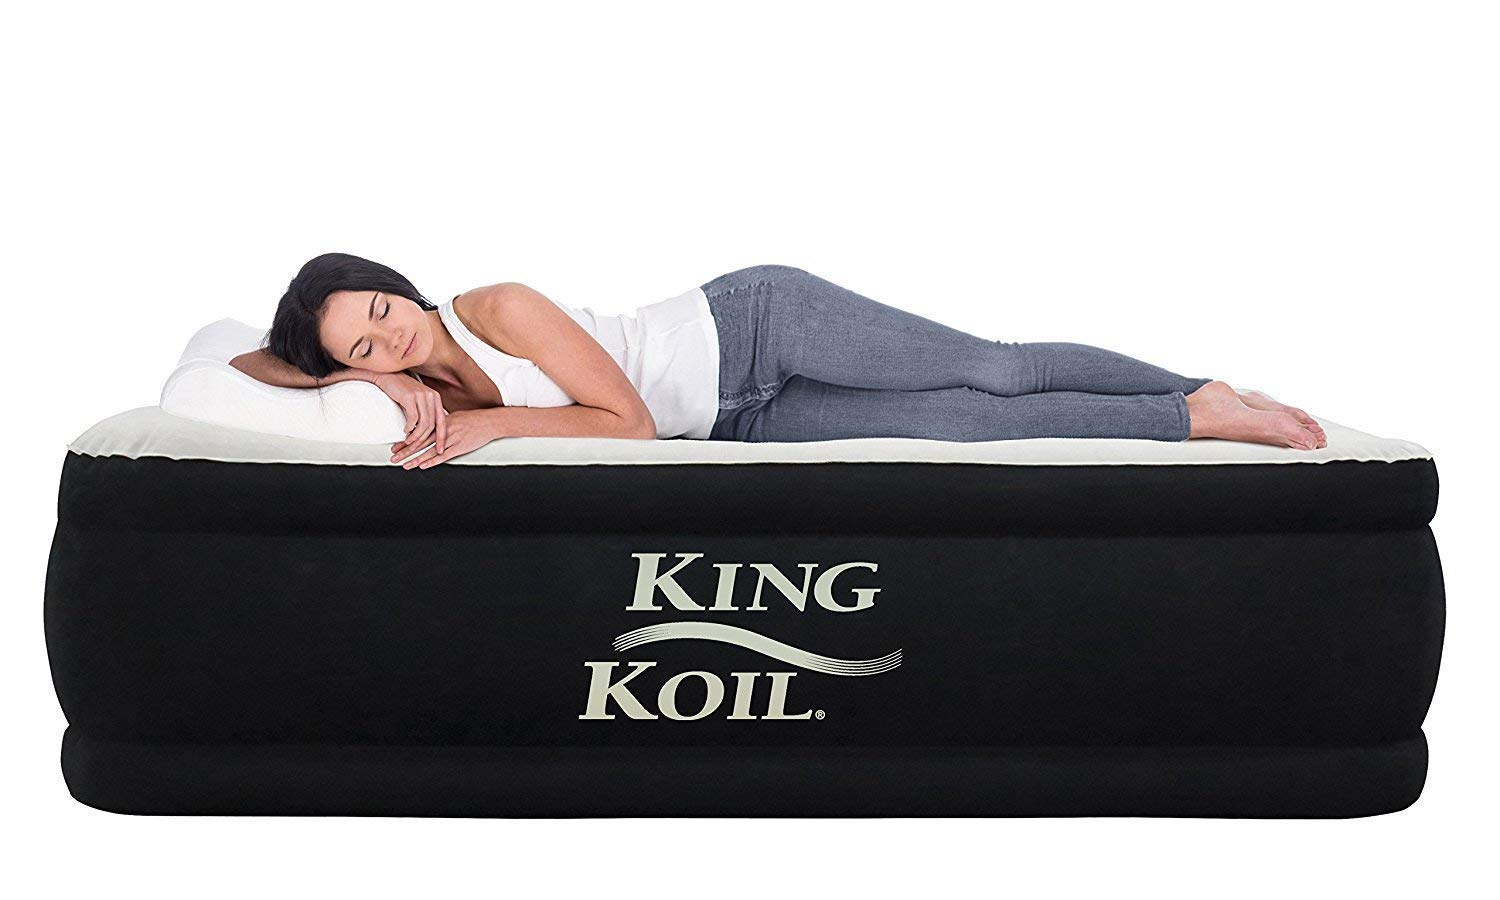 King Koil Twin Air Mattress for Camping Trips